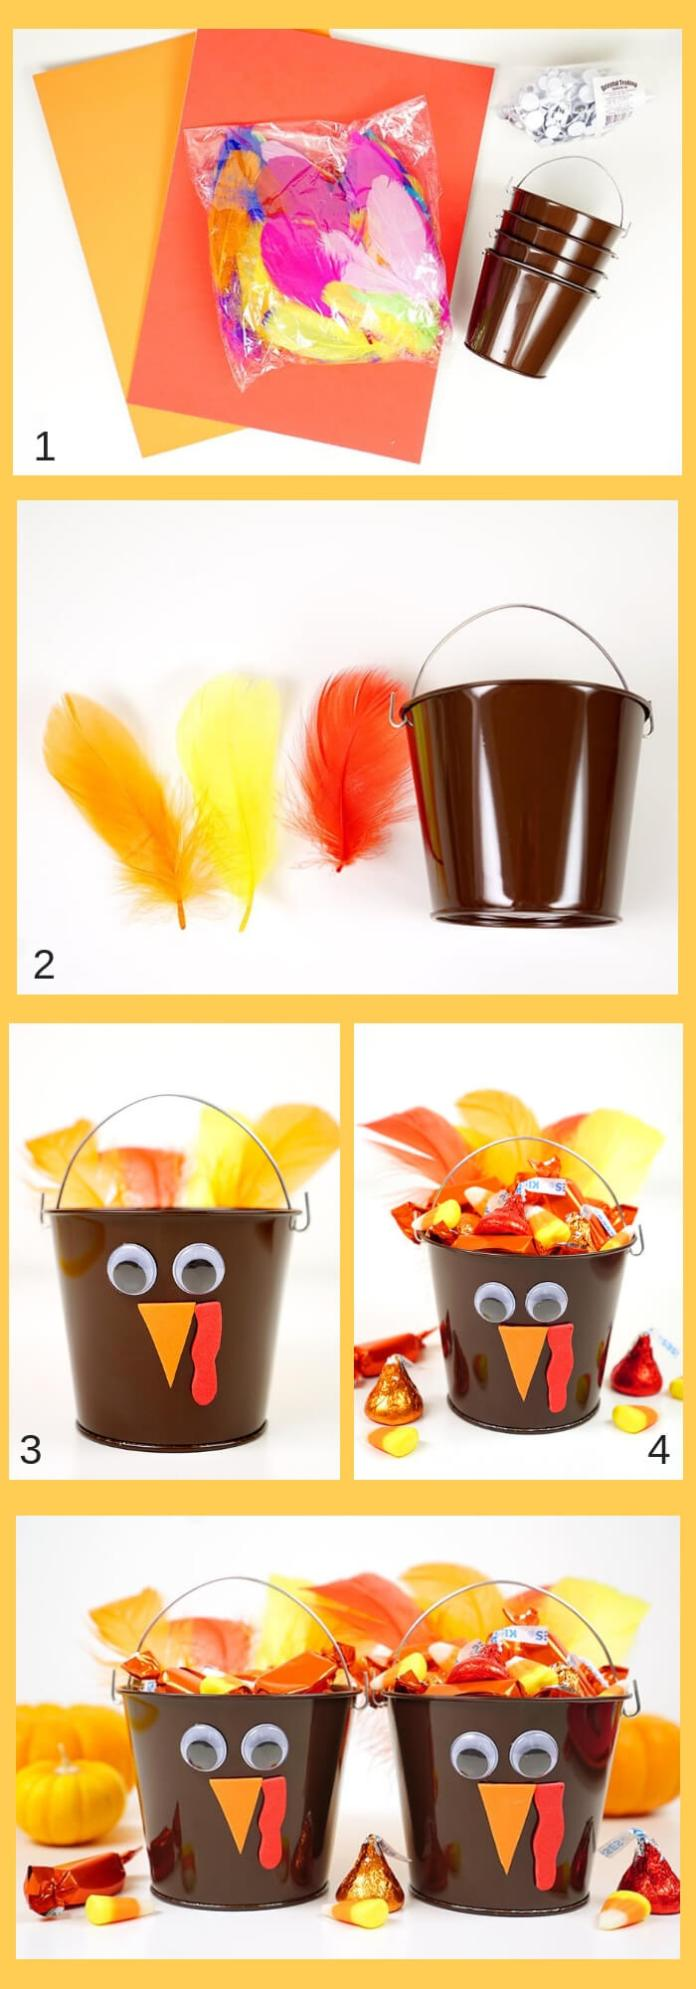 Turkey Treat Buckets | Simple Ideas for Kids' Crafts for Thanksgiving - FarmFoodFamily.com